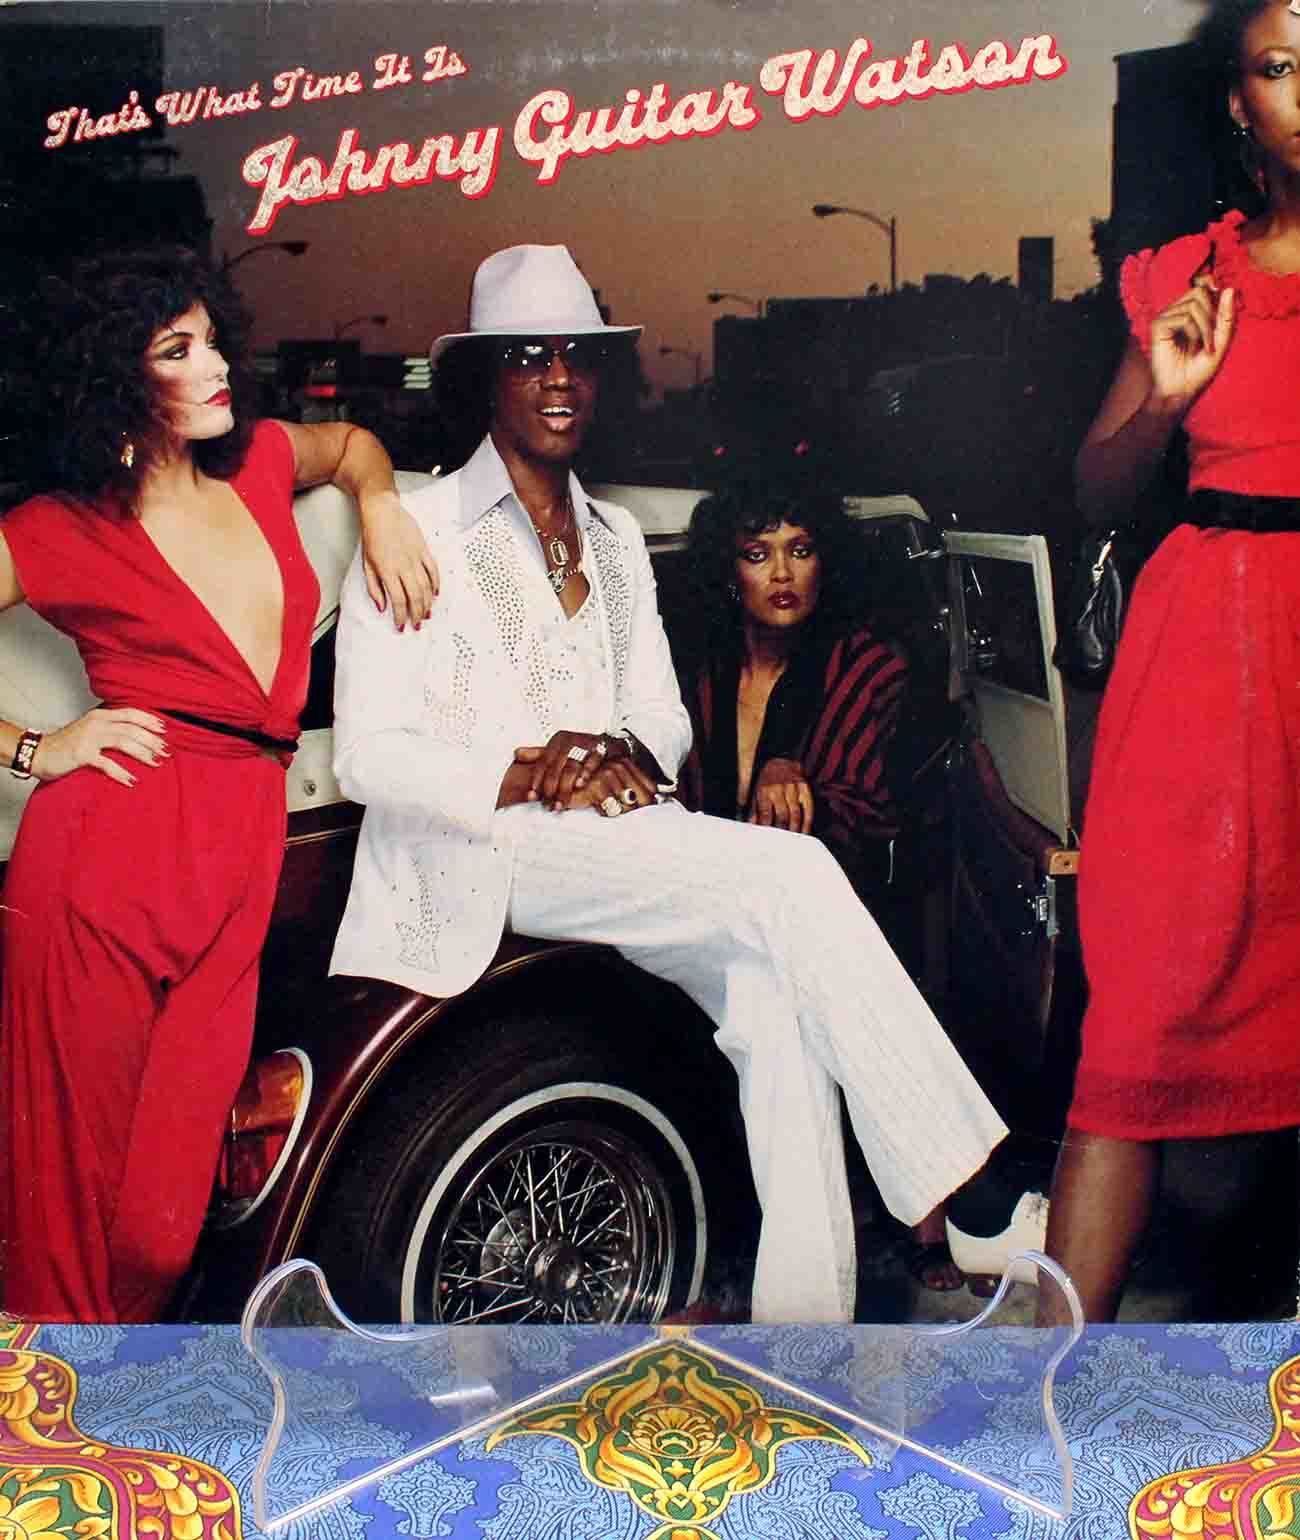 Johnny Guitar Watson  Thats What Time It Is 01